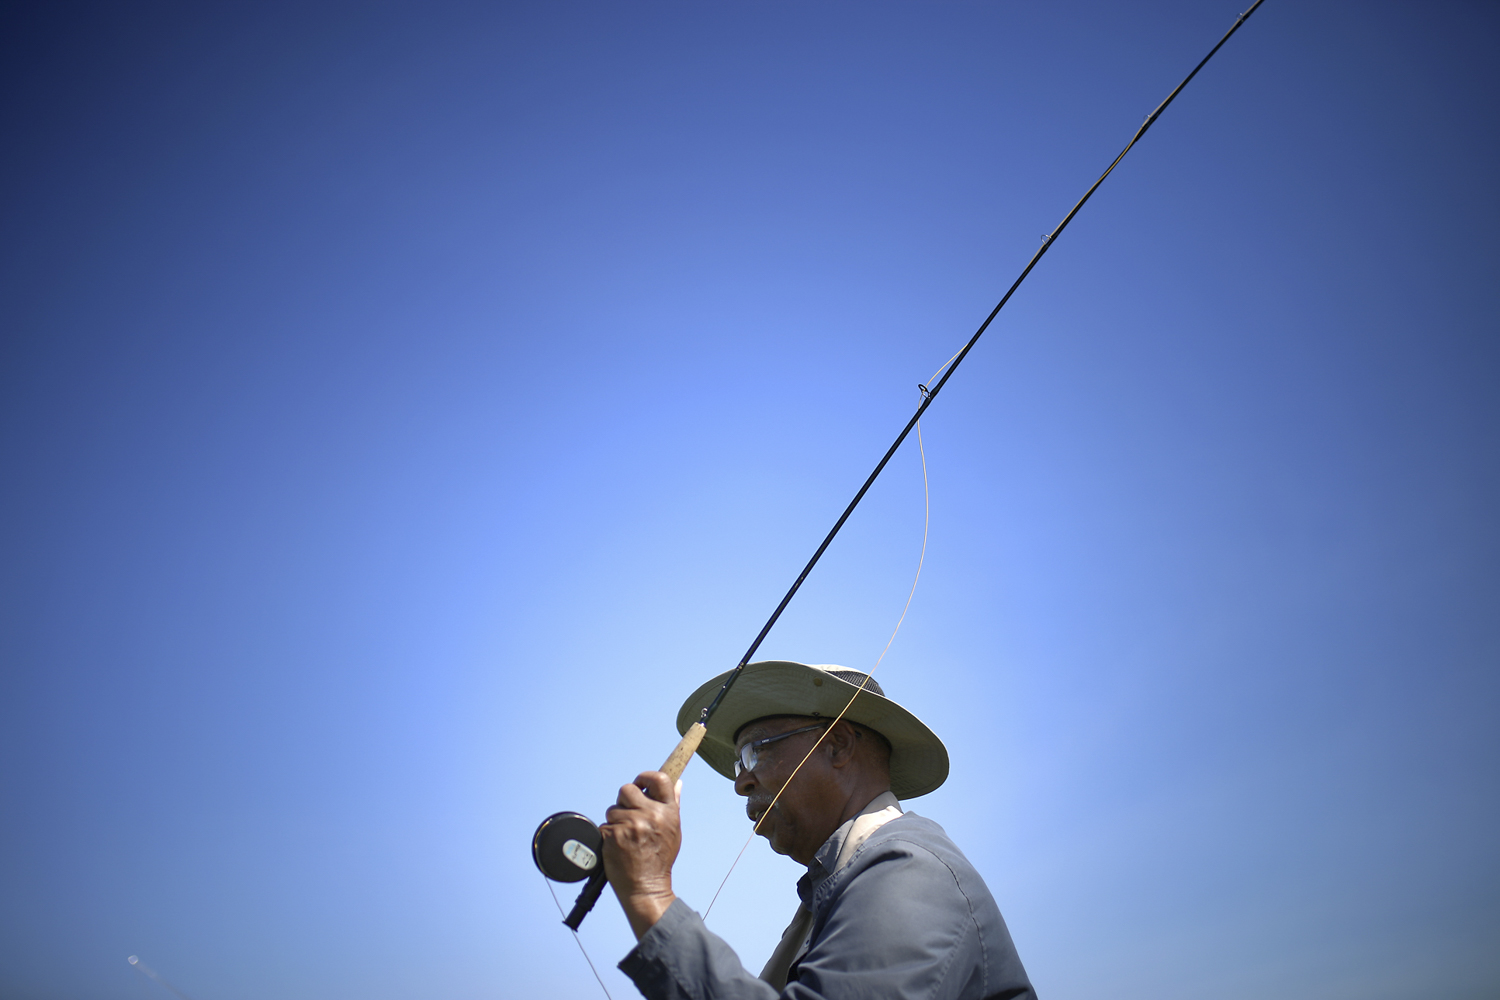 Norman Rankins, from Colonial Heights, casts a line during a Project Healing Waters Fly Fishing outting at Virginia State University's aquaculture ponds in Ettrick on Tuesday, April 11, 2017. [Scott P. Yates/progress-index.com]